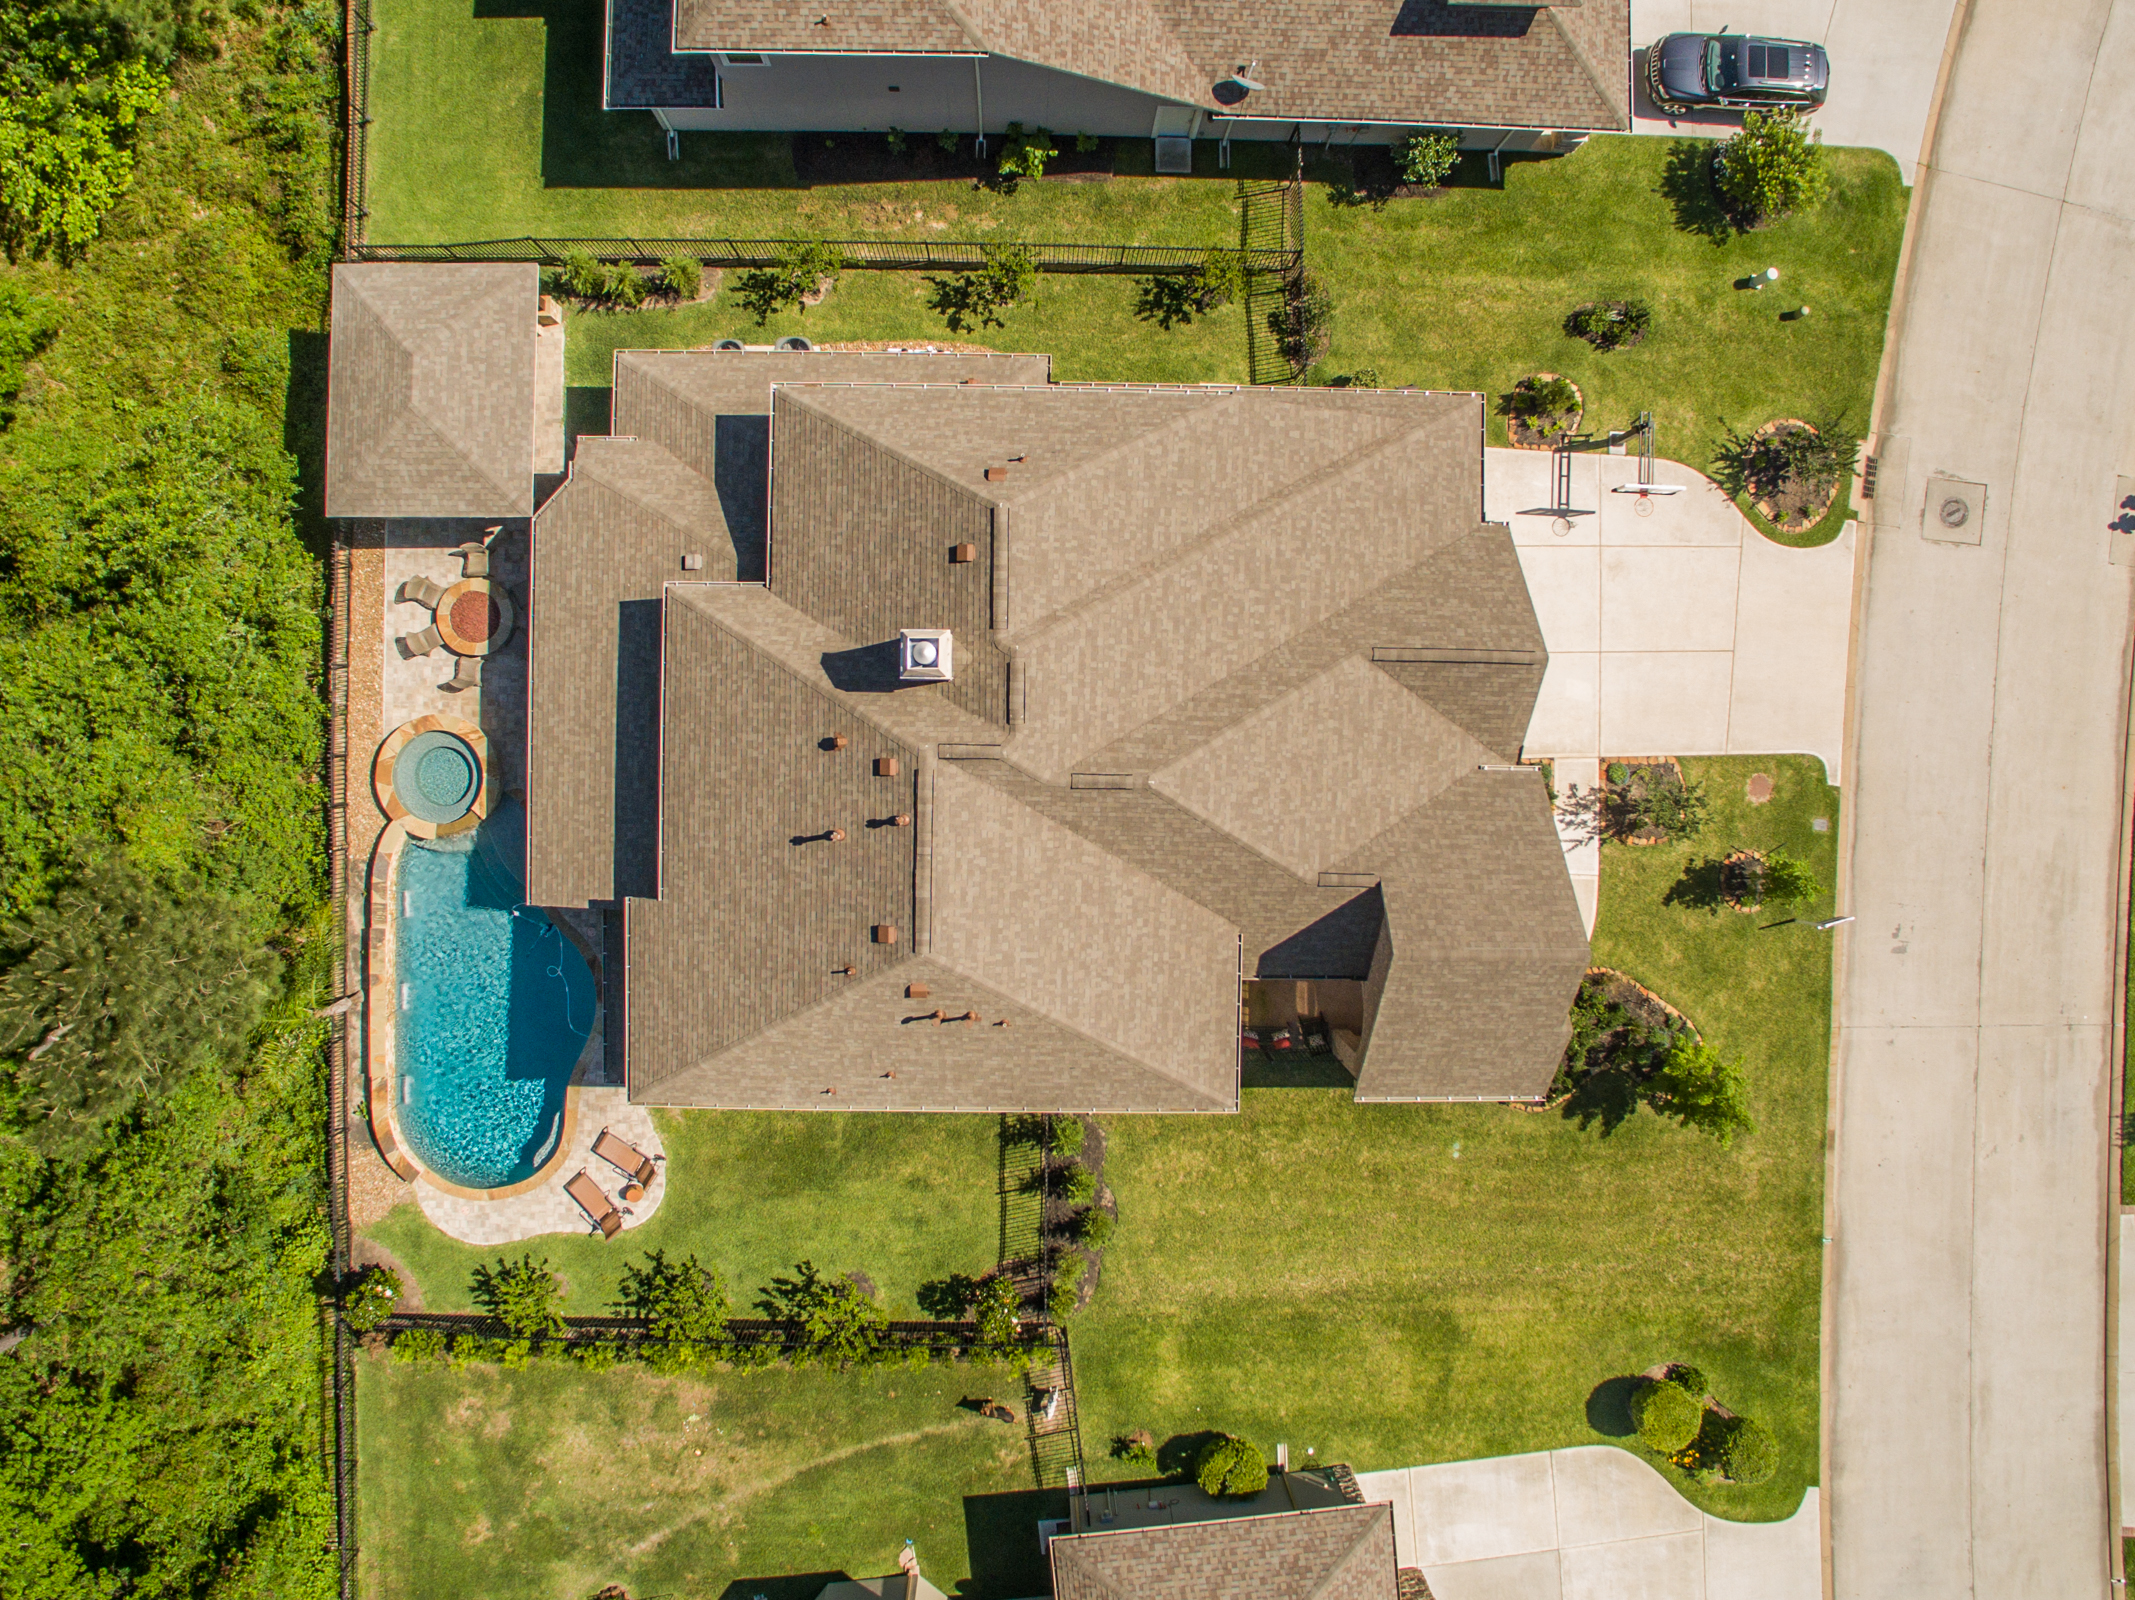 3338 S. Cotswold Manor Drive_Aerial-3.jpg